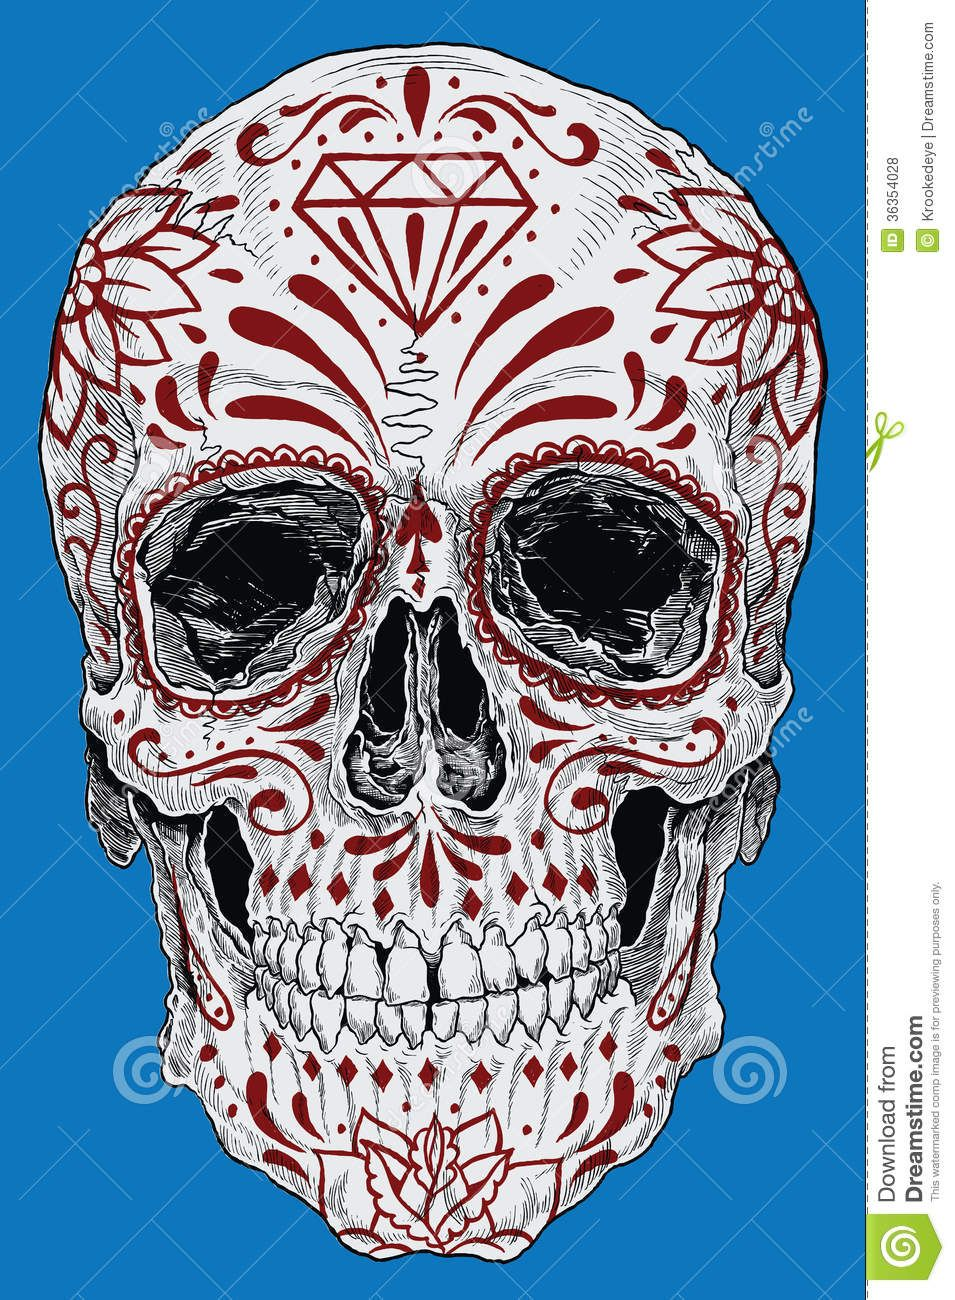 Realistic Day Of The Dead Sugar Skull Royalty Free Stock